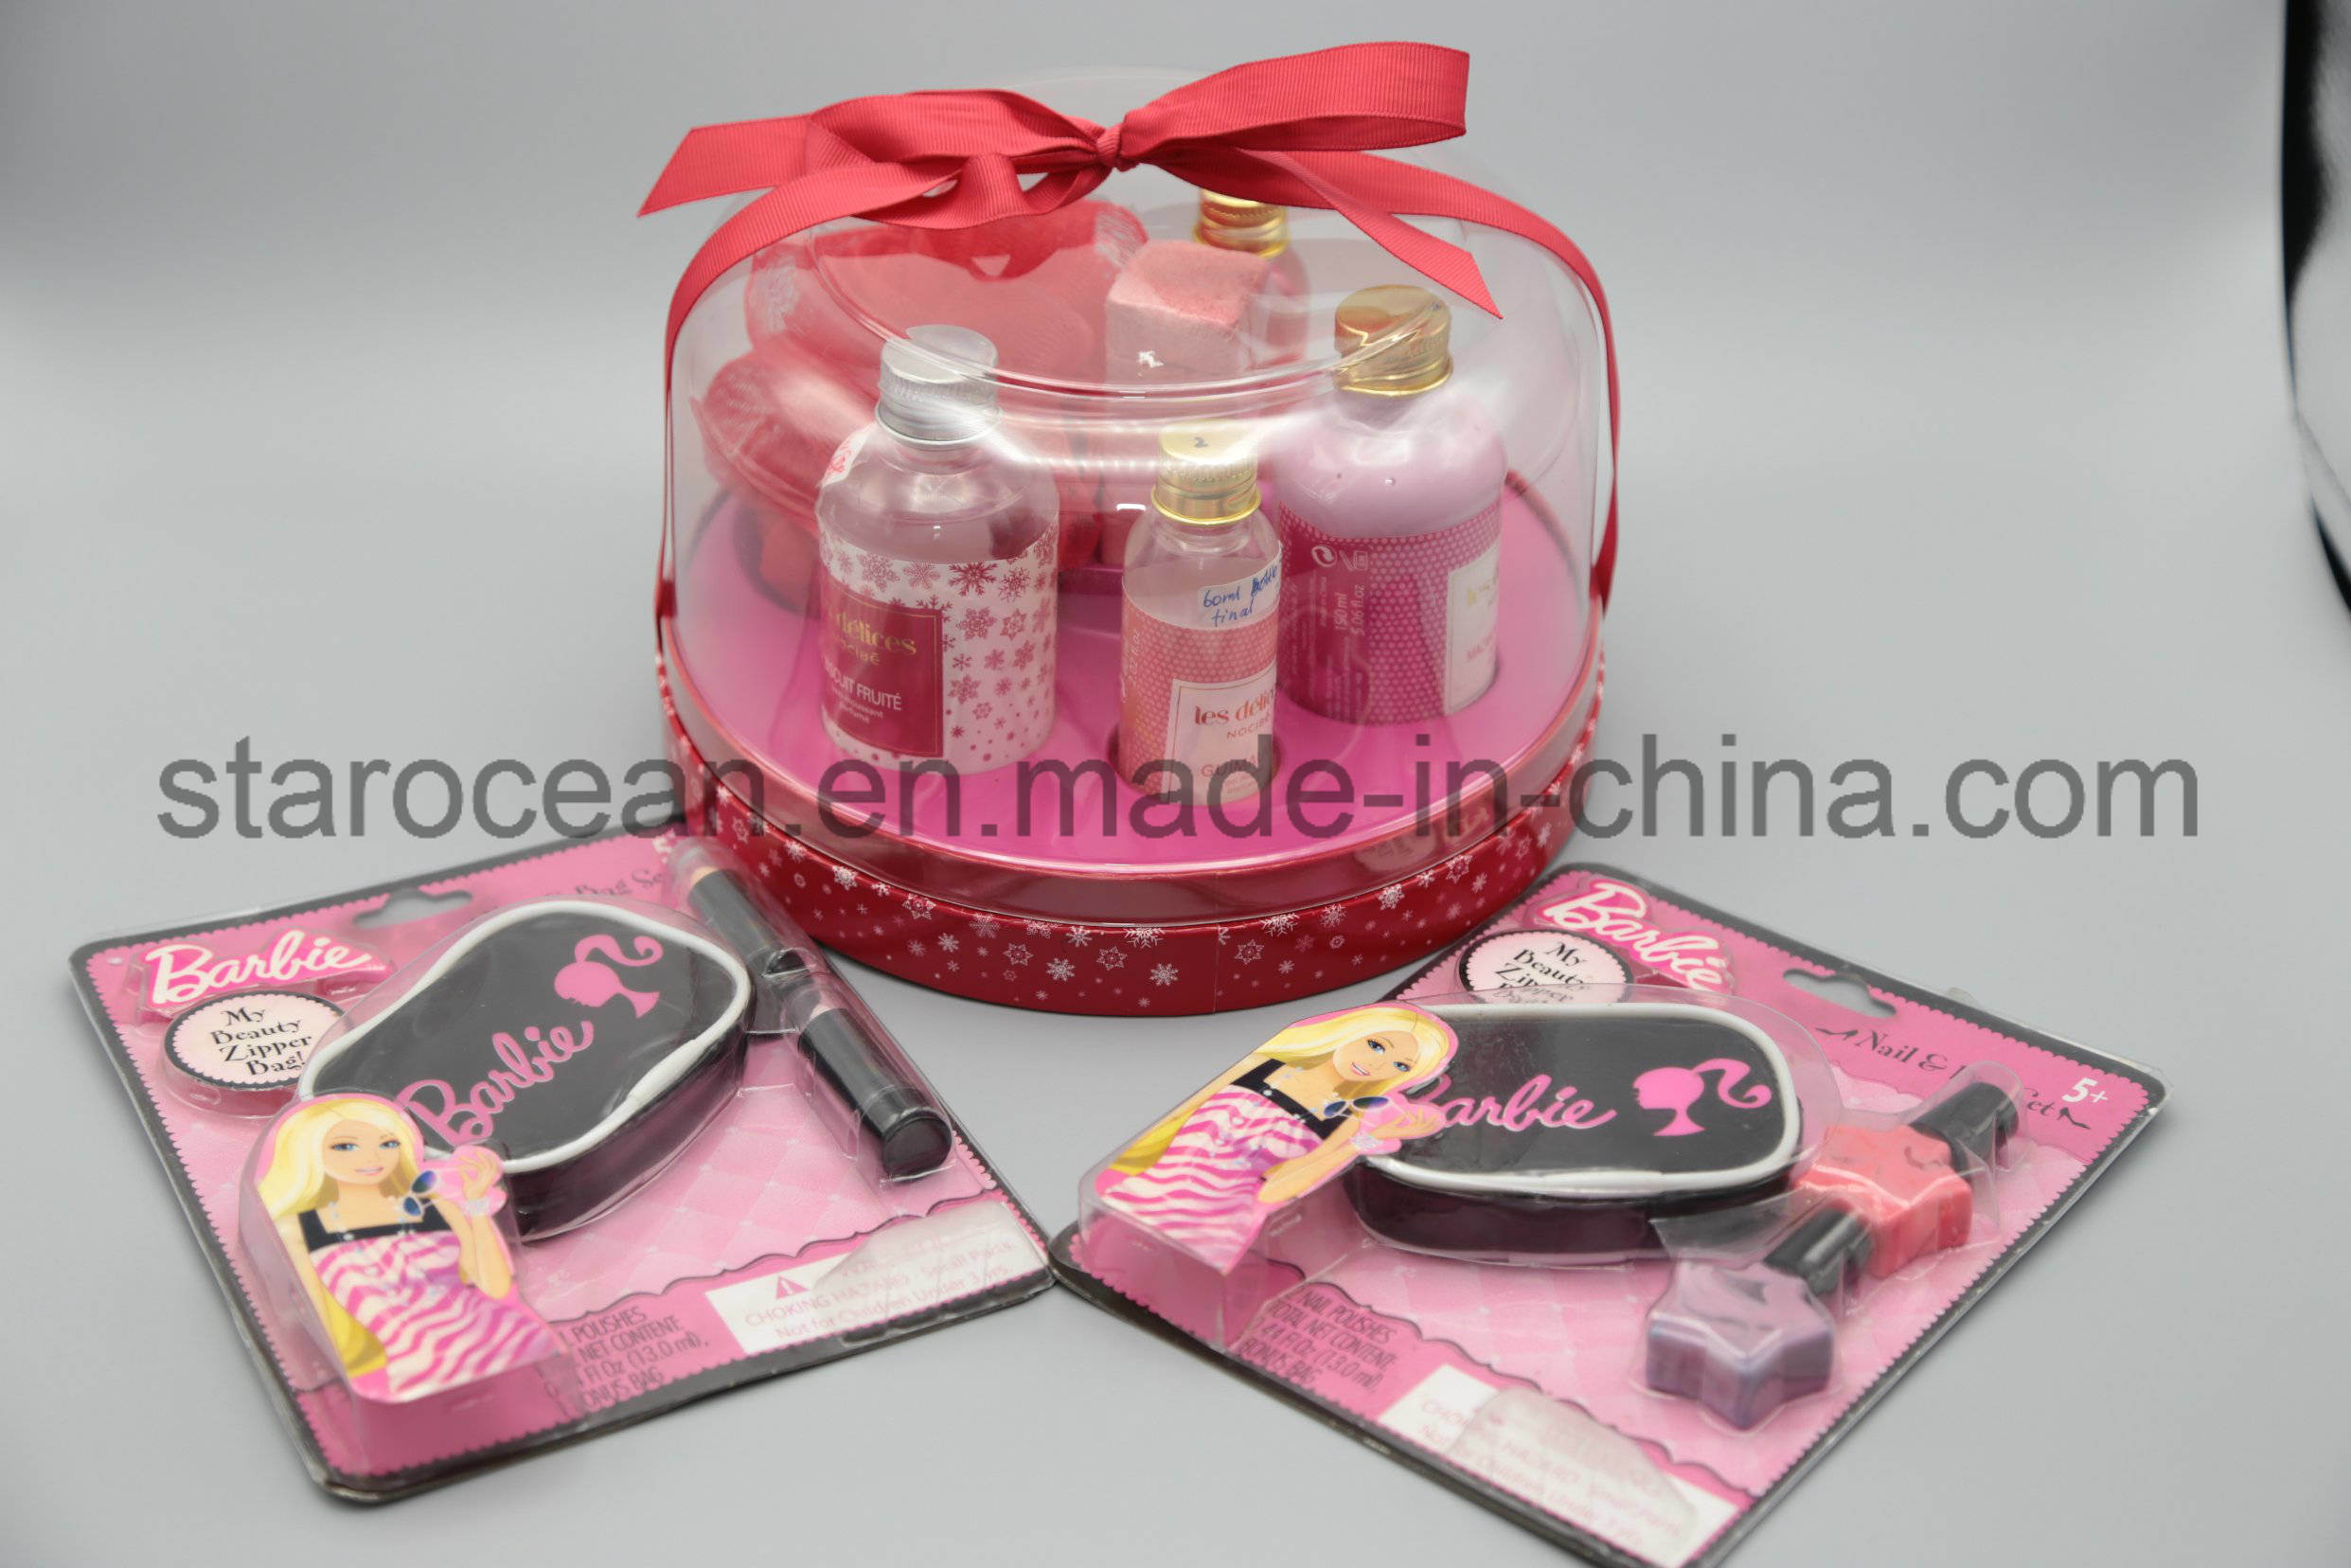 China Makeup Products Plastic Outer Blister Packaging - China ...